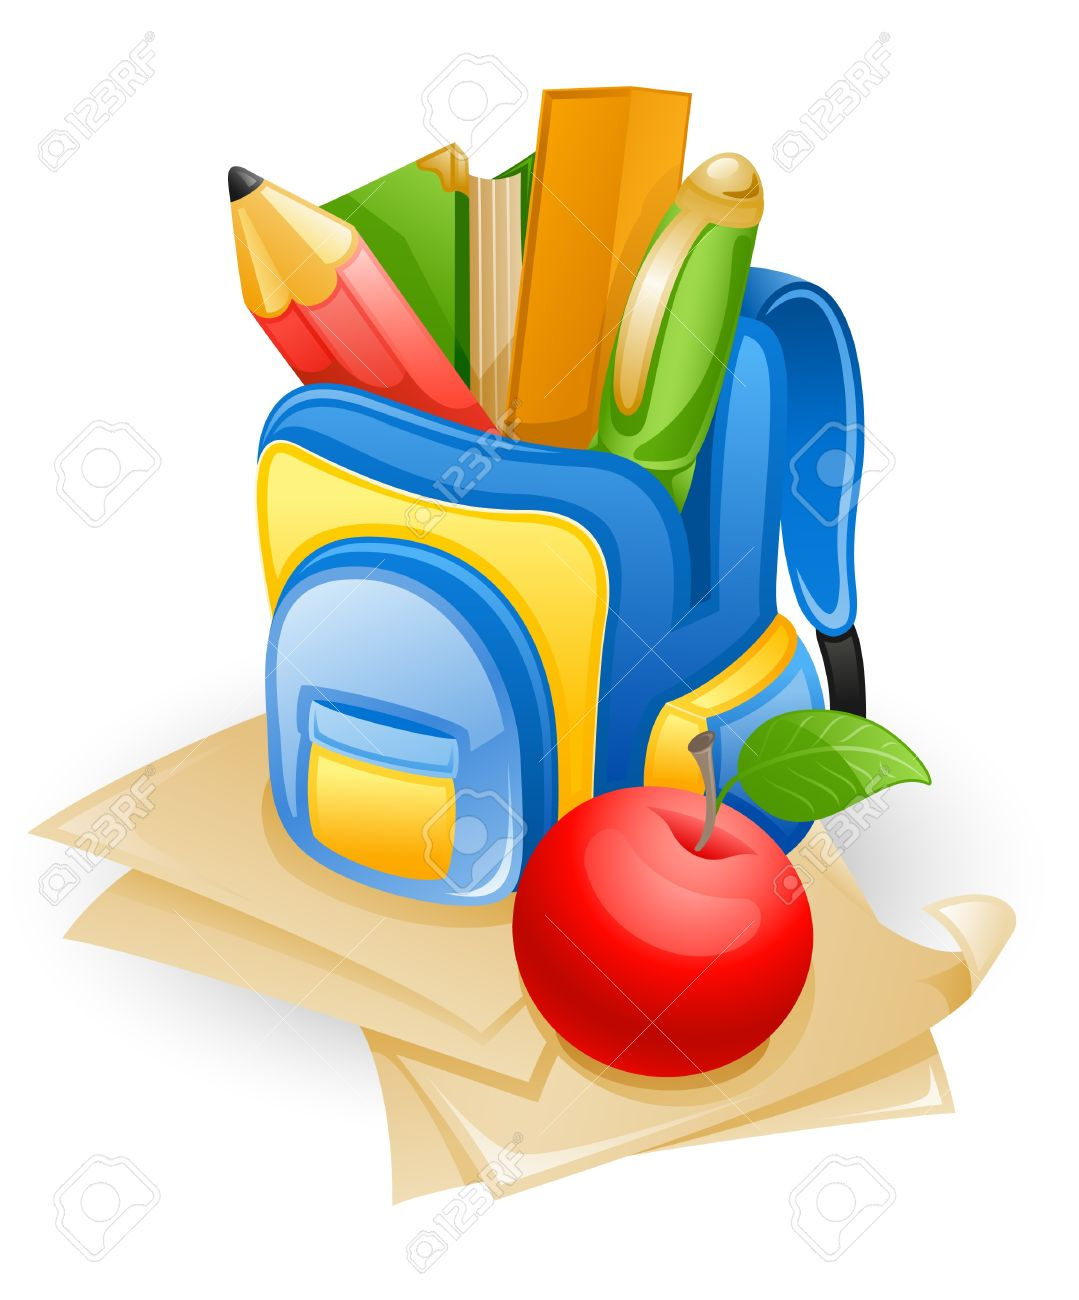 School bag: pencil, book, pen, ruler and apple on paper. Stock Vector - 10857002